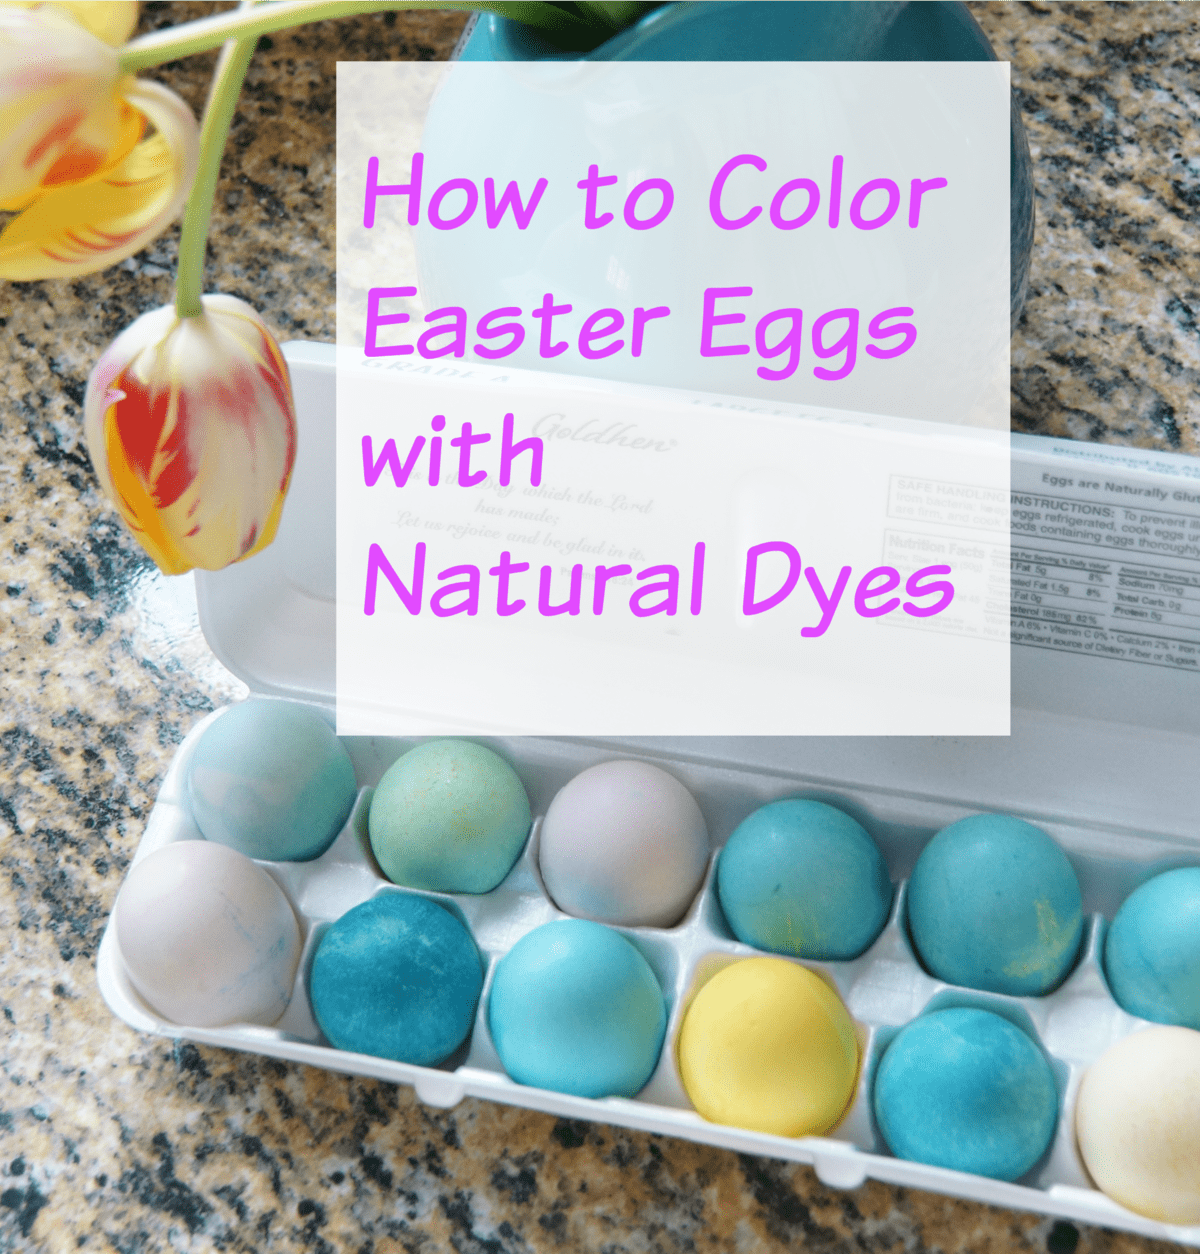 How To Color Easter Eggs With Natural Dyes Heartwork Organizing - Color-easter-eggs